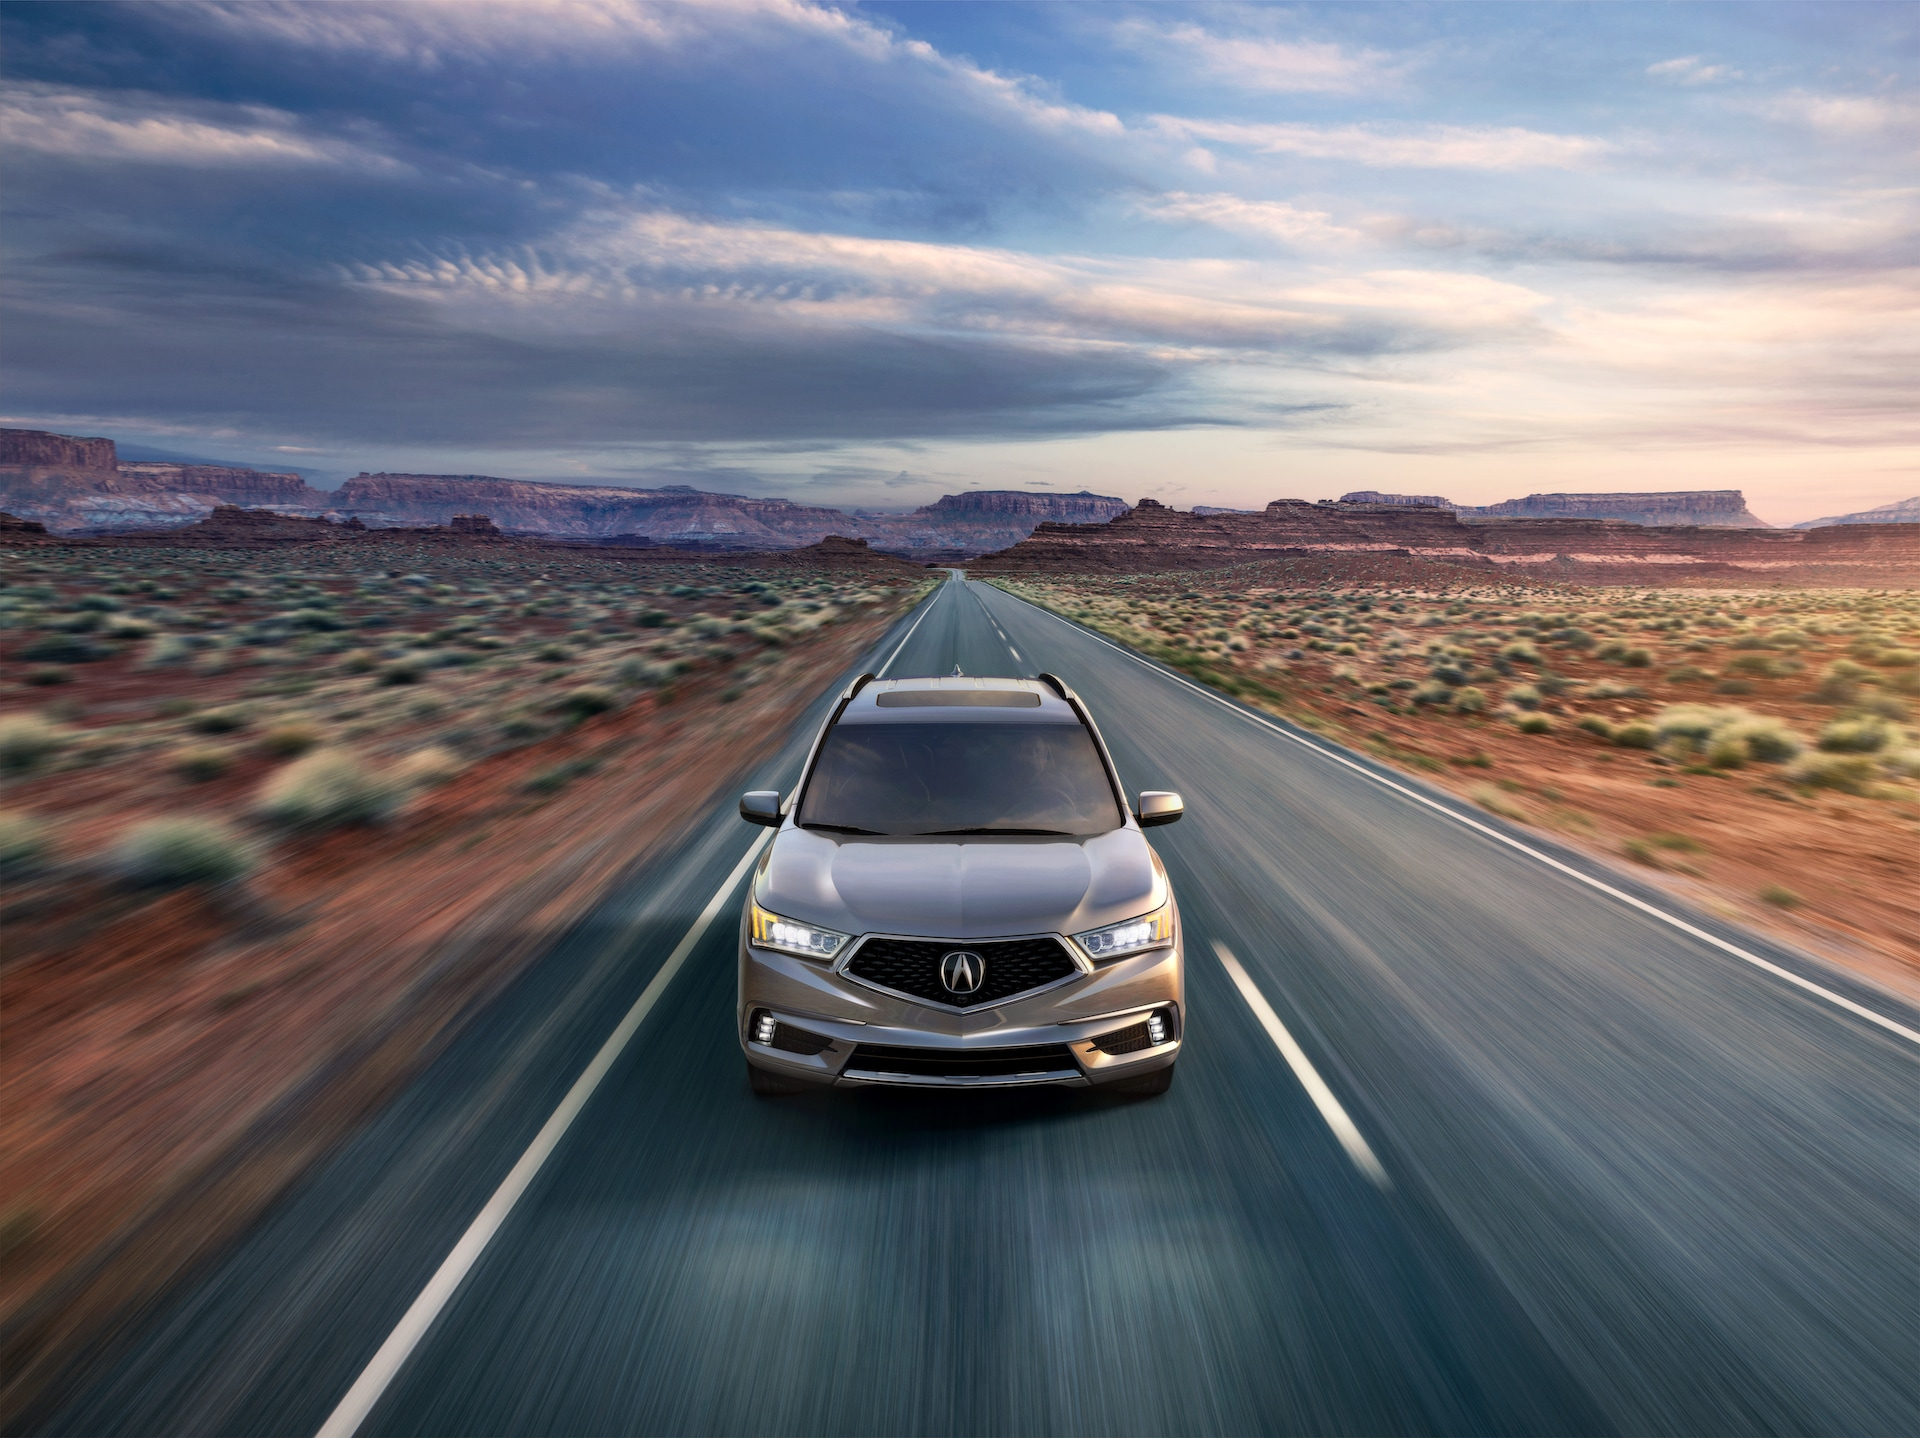 Comparison of the 2020 Acura MDX & 2020 Toyota Highlander at Acura Hunt Valley | Grey 2020 Acura MDX driving on desert road at sunset